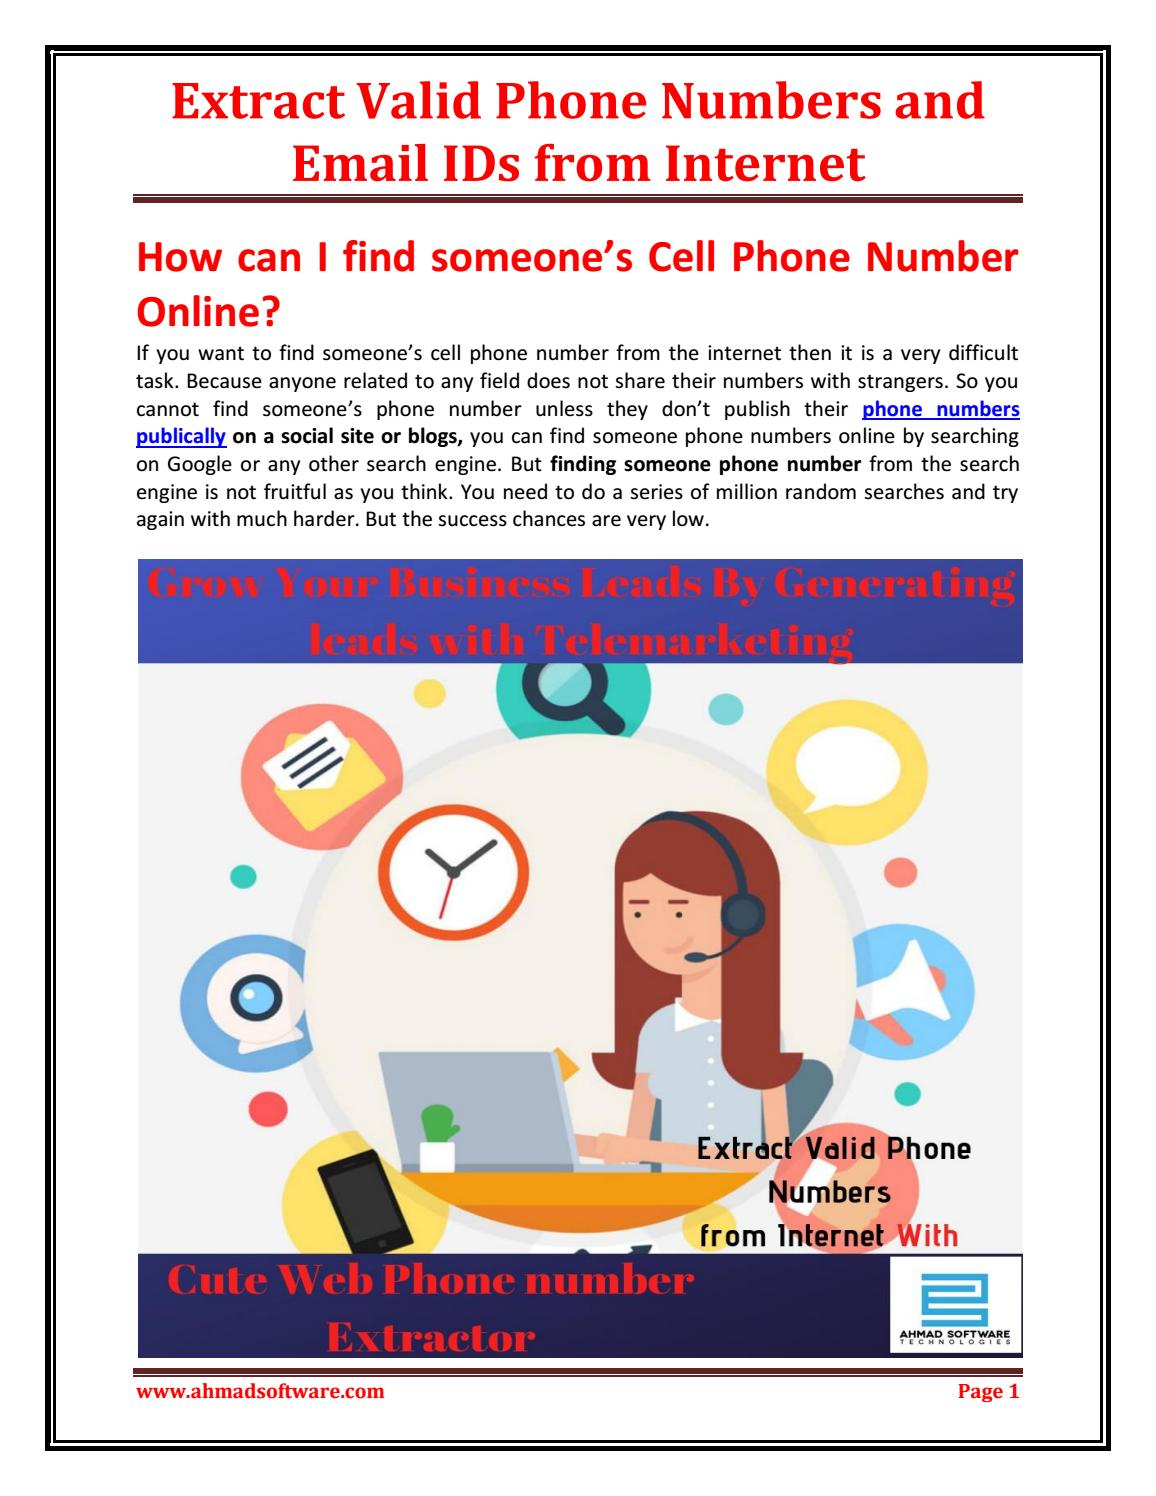 Extract Valid Phone Numbers and Email IDs from Internet by